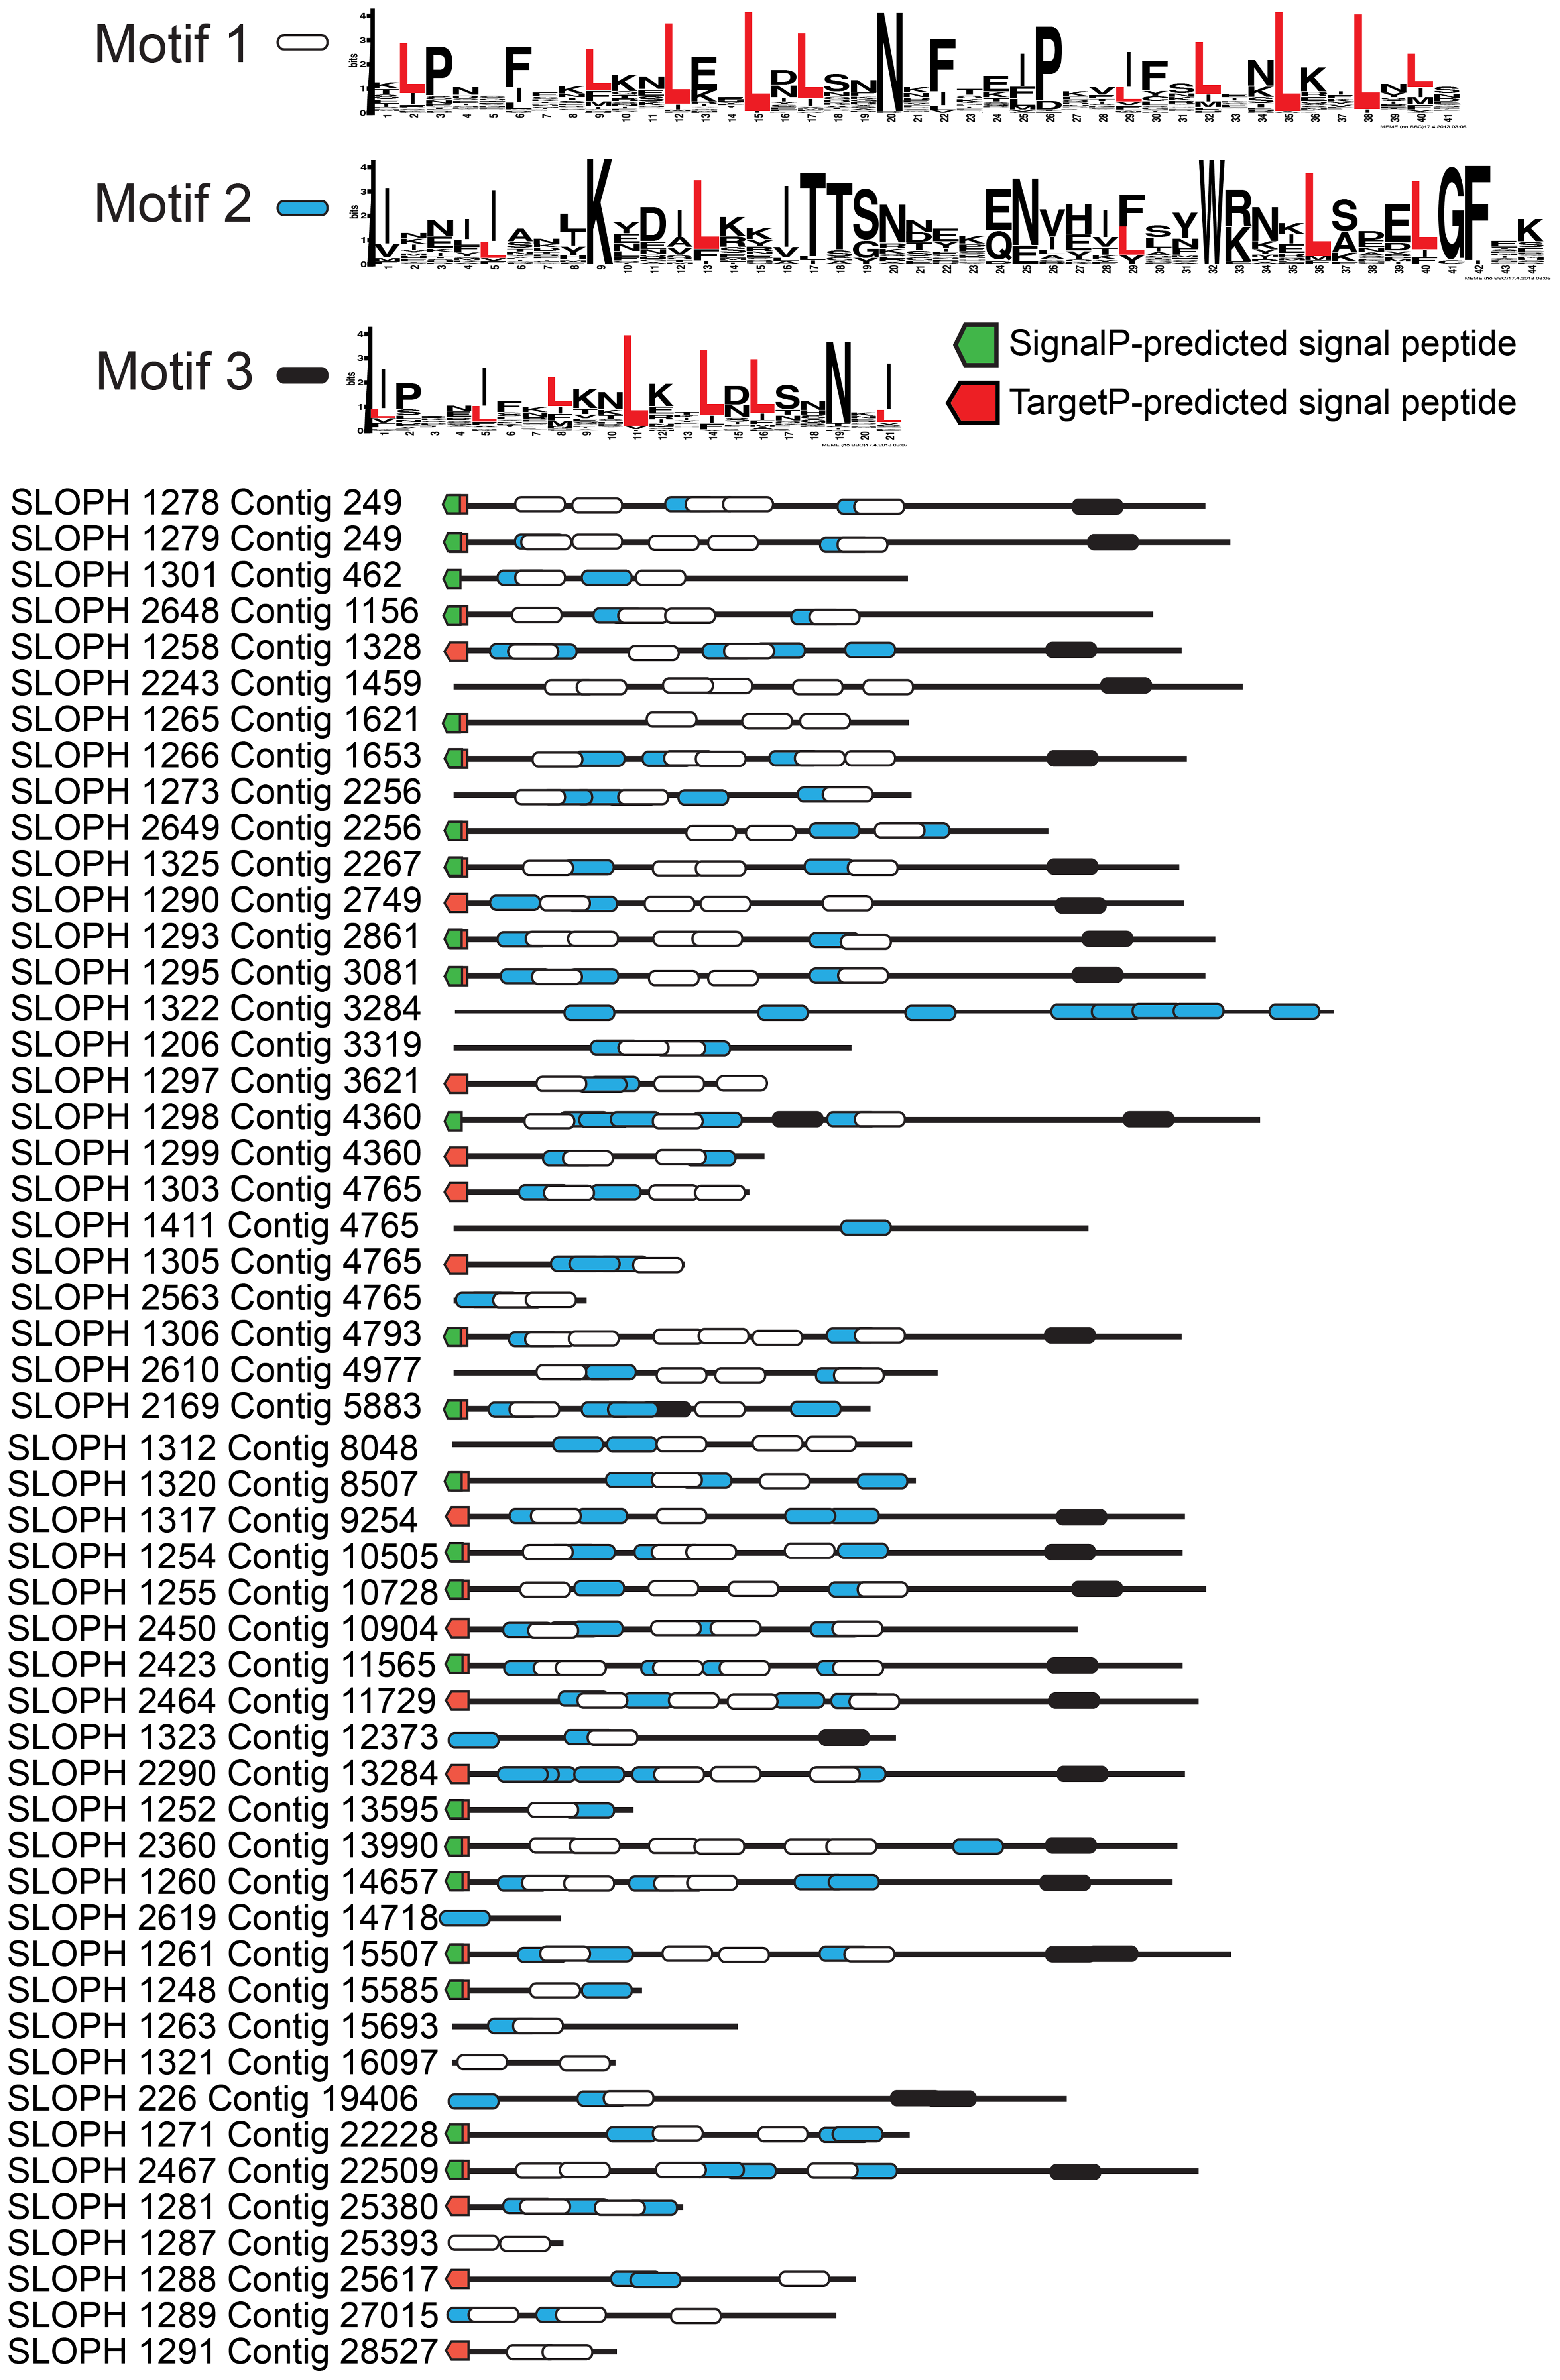 An expanded family of 52 complete leucine-rich repeat proteins in the <i>S. lophii</i> genome.